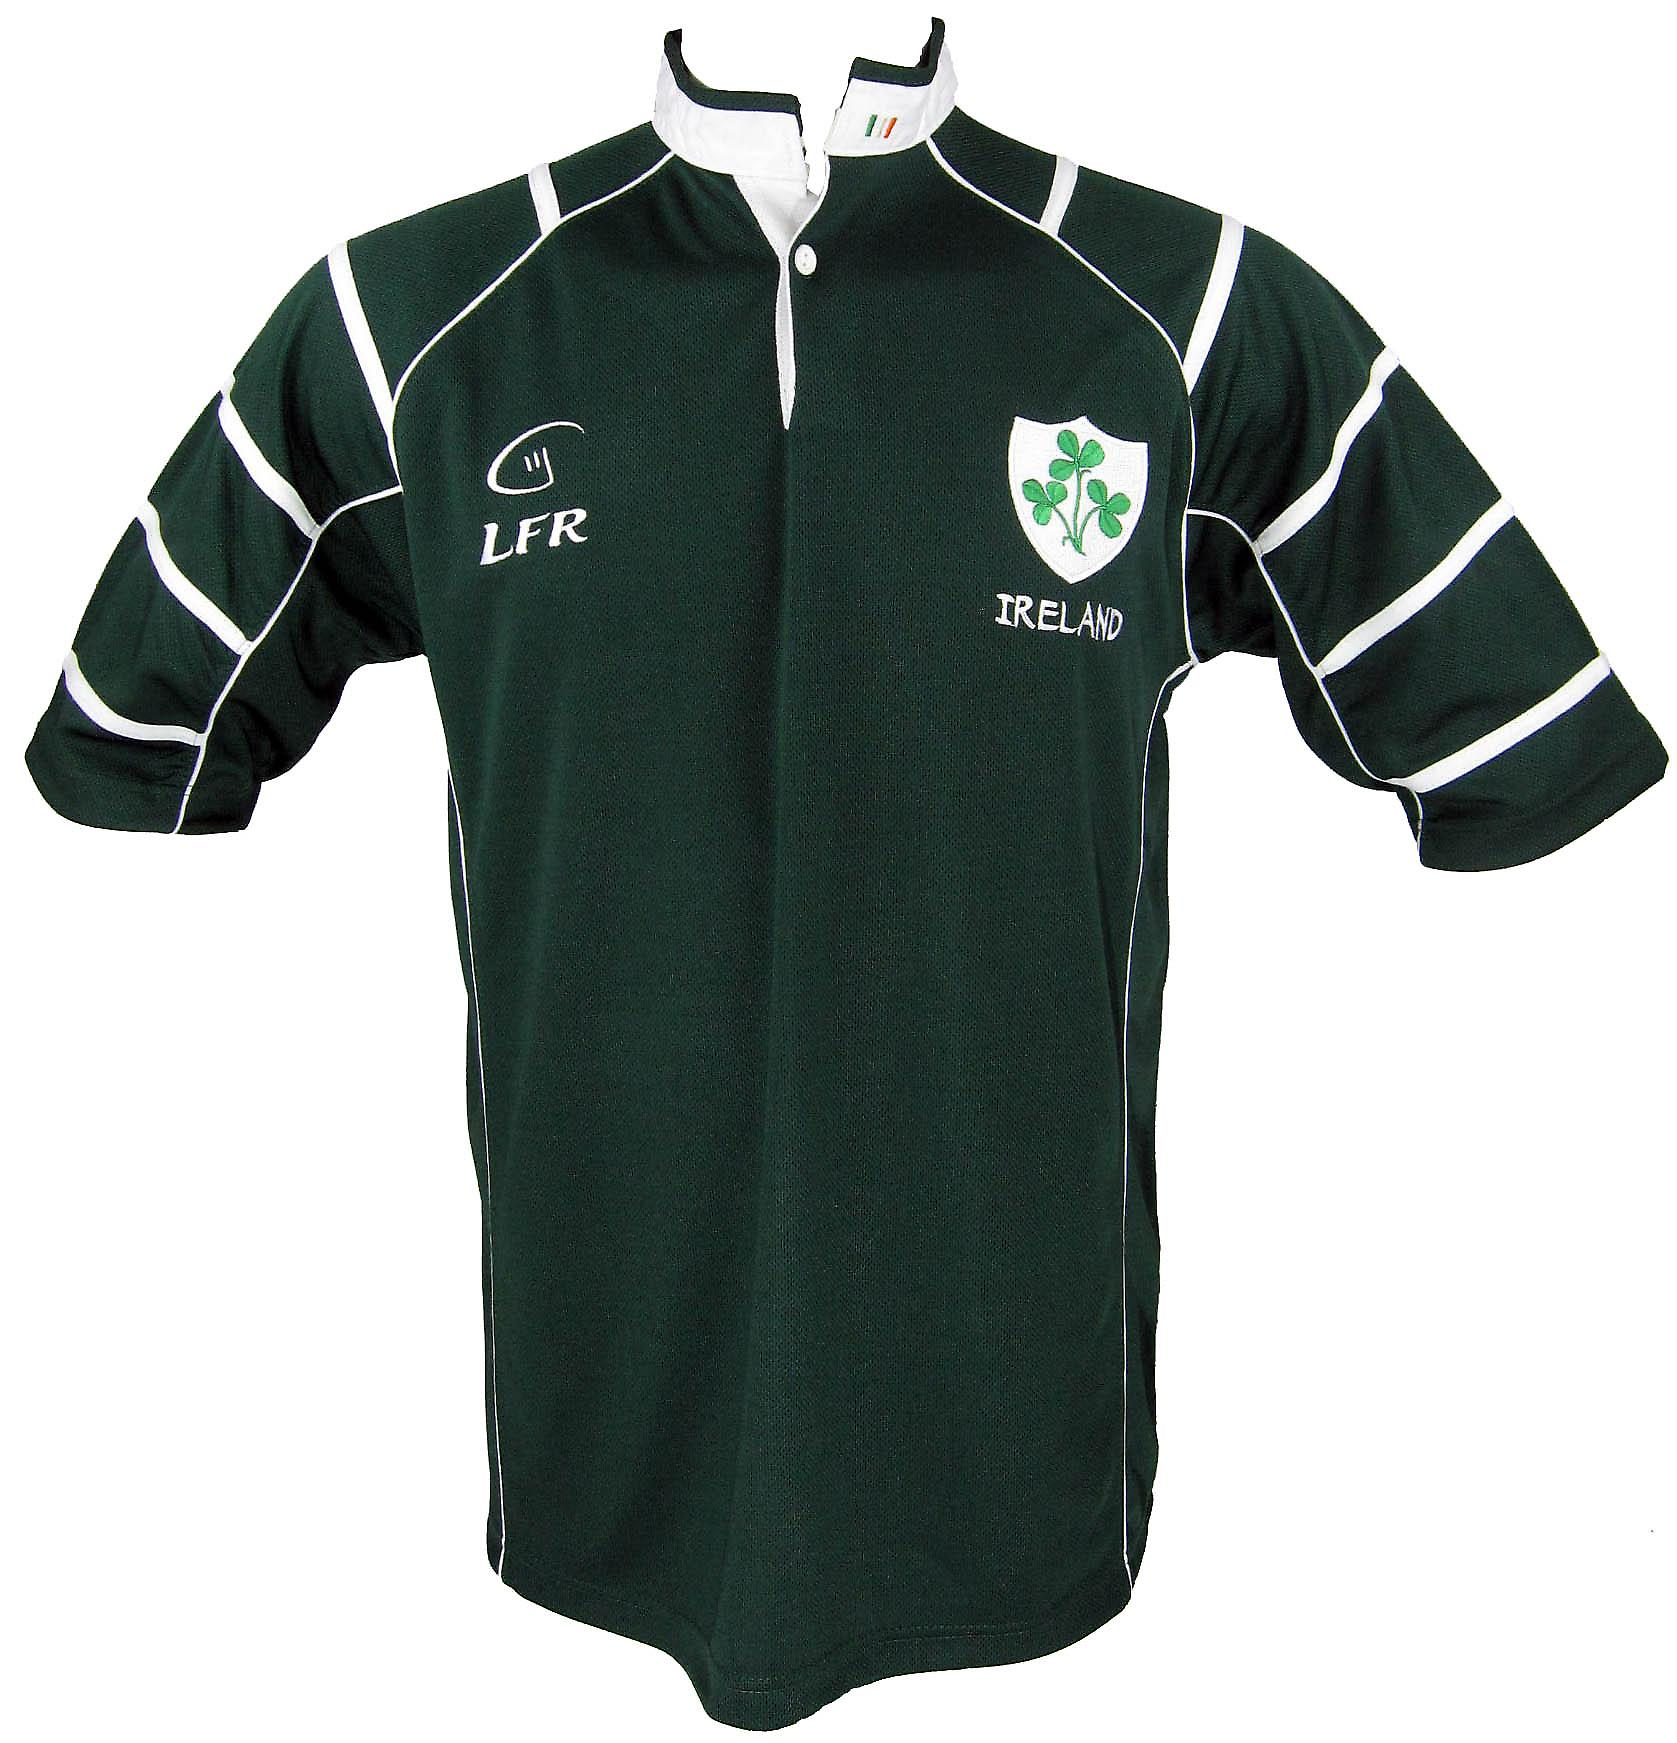 Ireland Shamrock Dark Green Breathable Rugby Shirt by Live for Rugby Sizes XS - 3XL